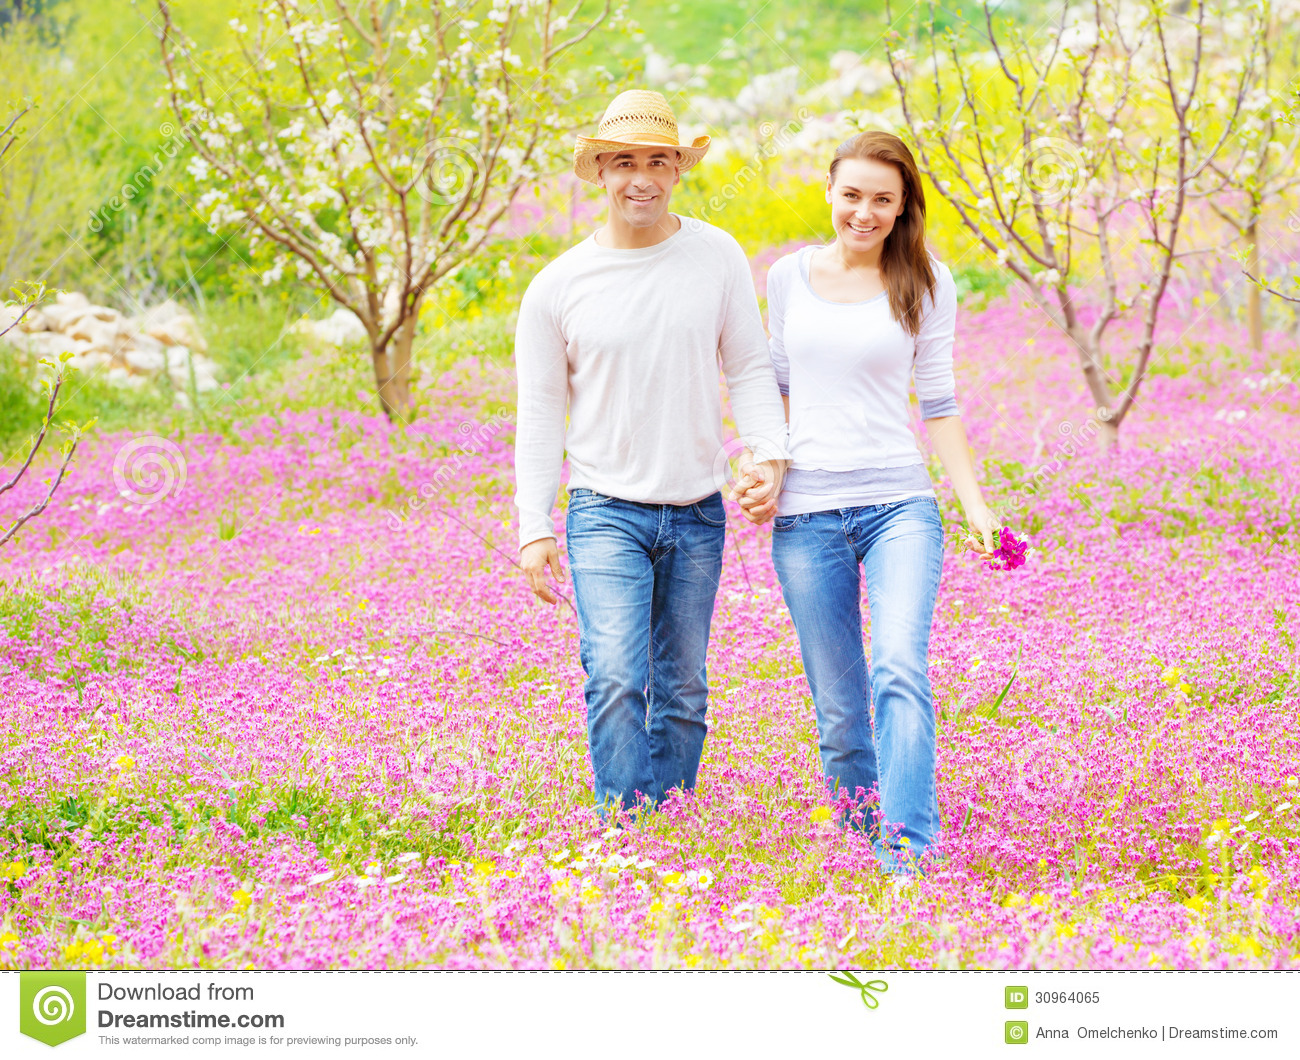 100% free online dating in spring garden Free classified ad sites for farm and ranch, rural antiques.